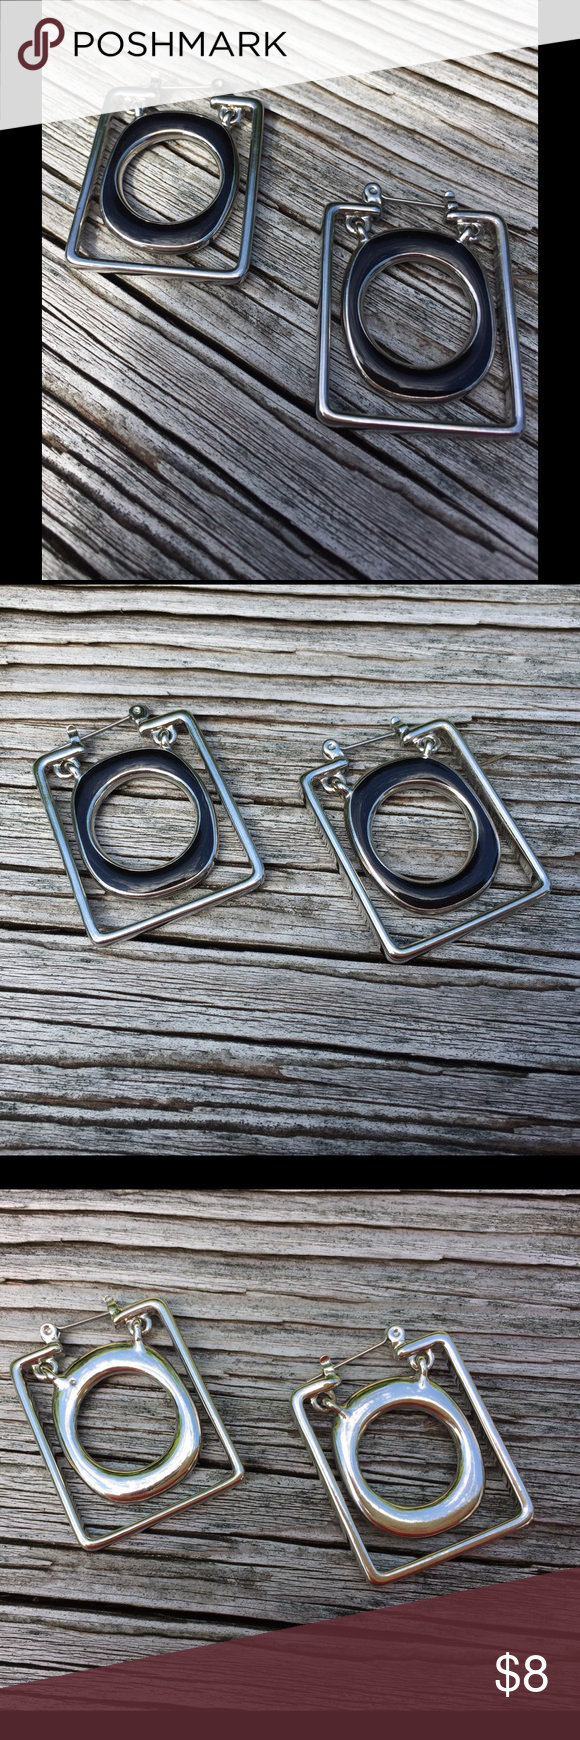 Square Hoop Earrings Pierced earrings / square design / silver metal with black circle in the middle / the middle circle has movement, dangling on the inside of the square / the coloring in the picture of the backsides is just a reflection, not tarnishing. Jewelry Earrings